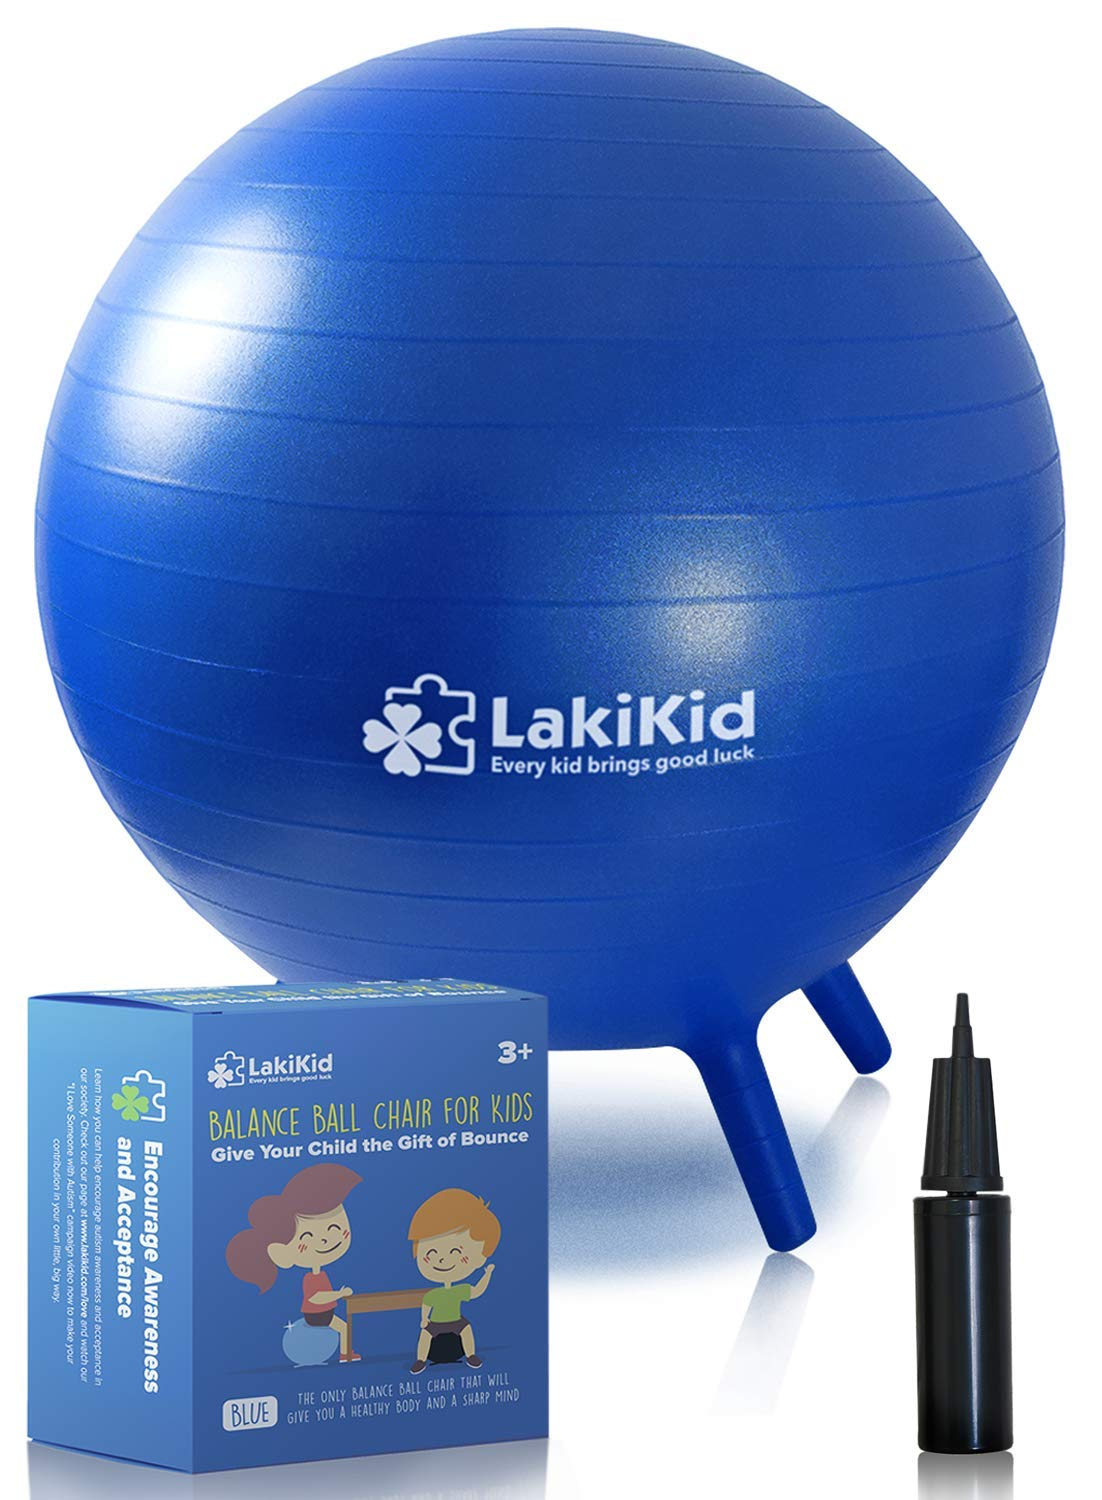 LakiKid Balance Ball Chairs for Kids Flexible Seating Classroom Furniture- Stability Ball Chairs with Legs, Exercise Ball Chair, Yoga Ball Chair, Ideal Alternative Seating for Students 18 45 cm